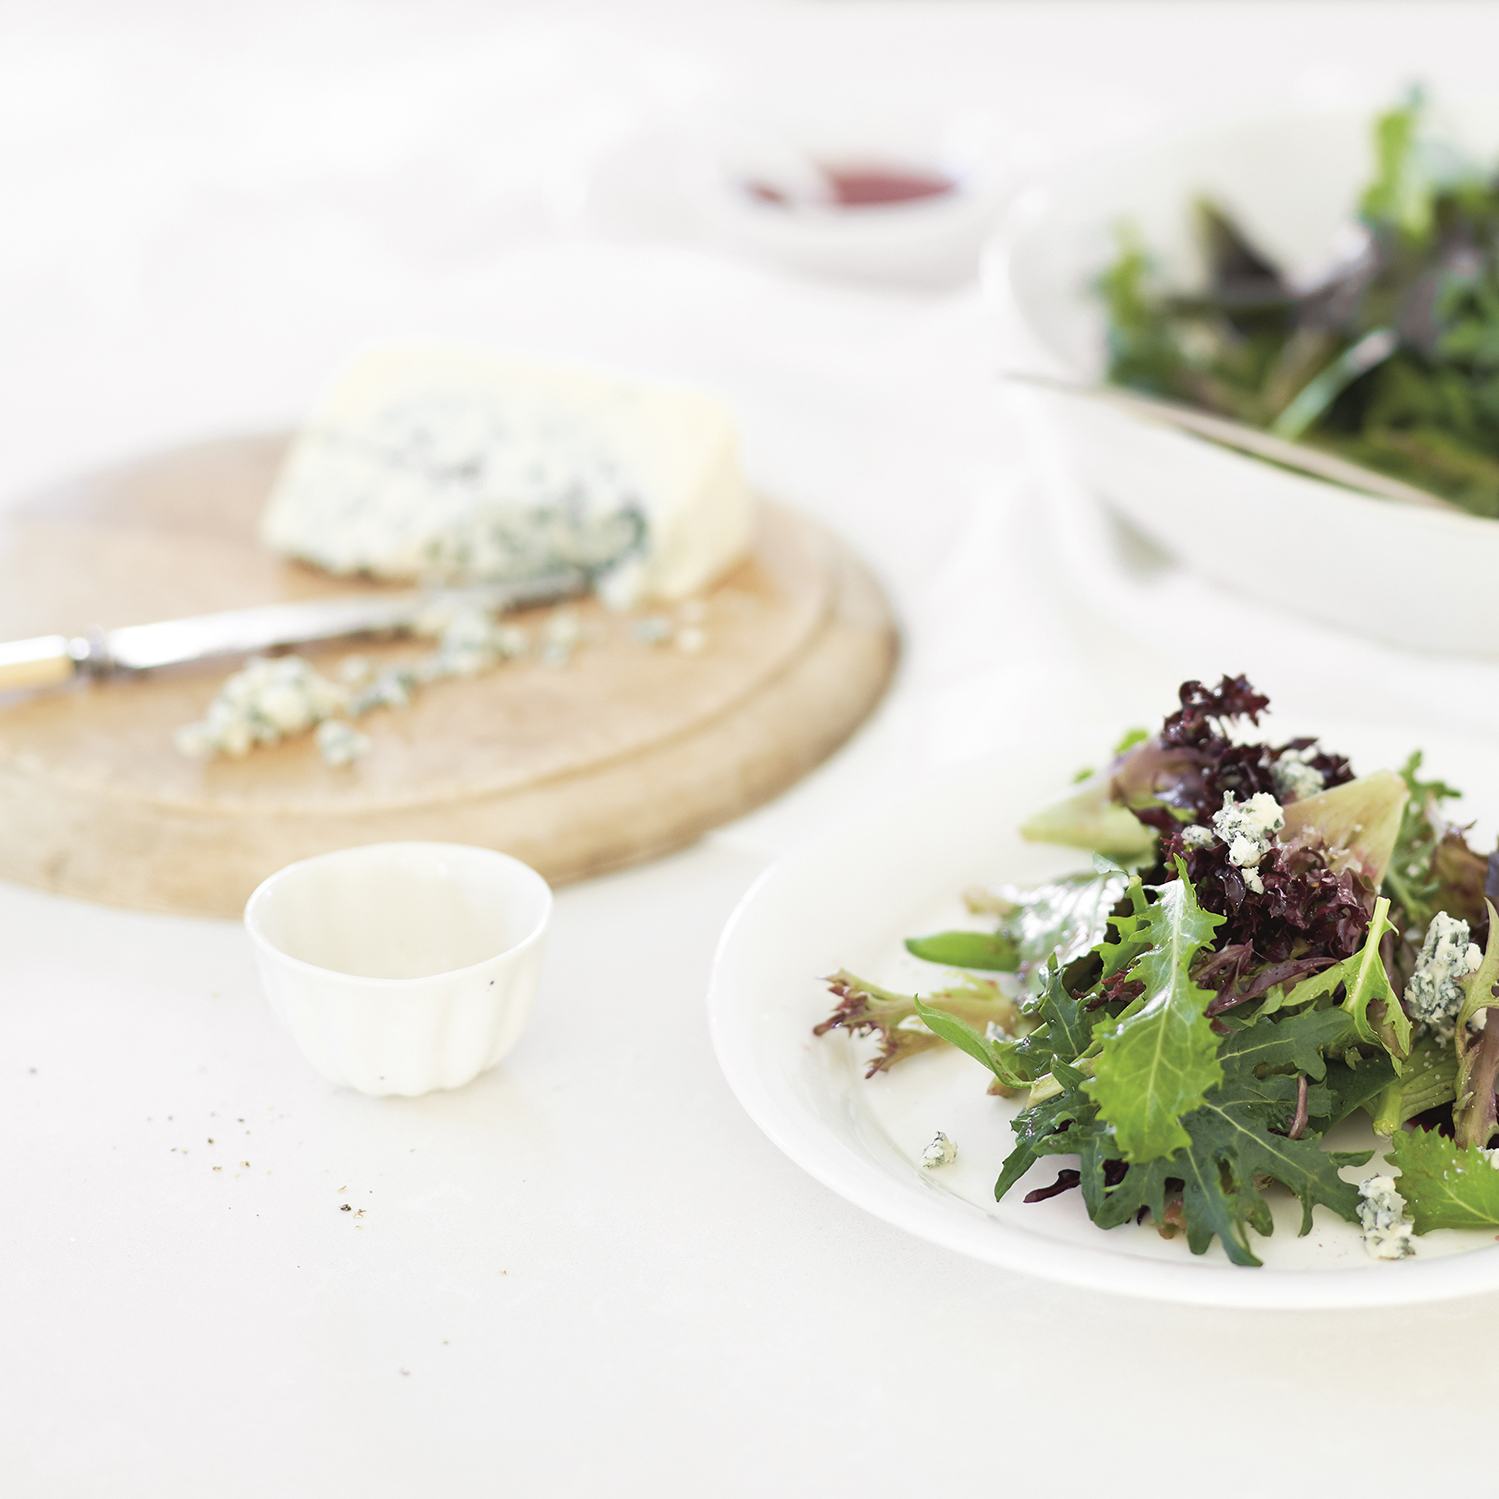 greens with pickled beet vinaigrette